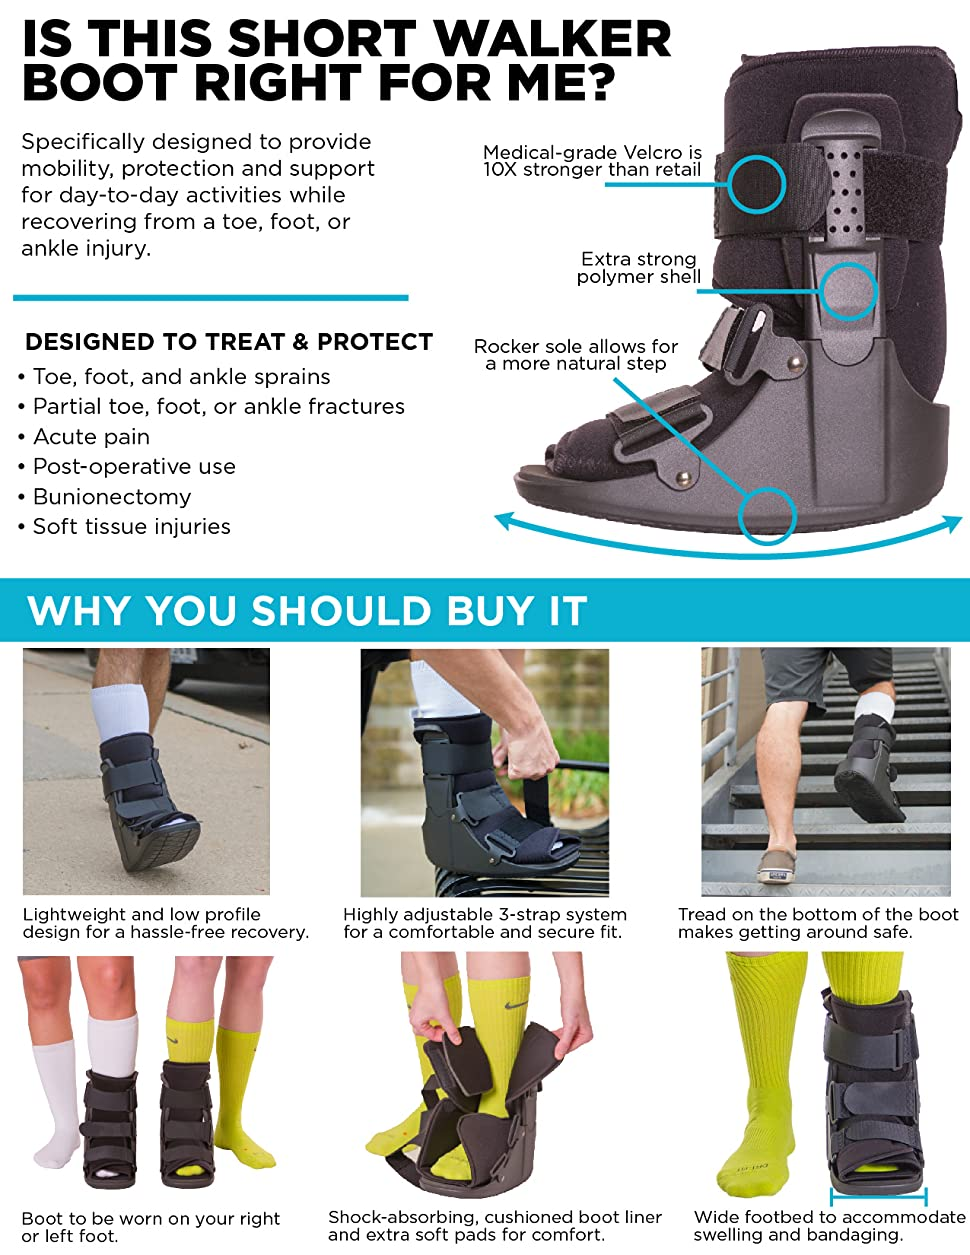 BraceAbility Short Broken Toe Boot | Walker for Fracture Recovery,  Protection and Healing After Foot